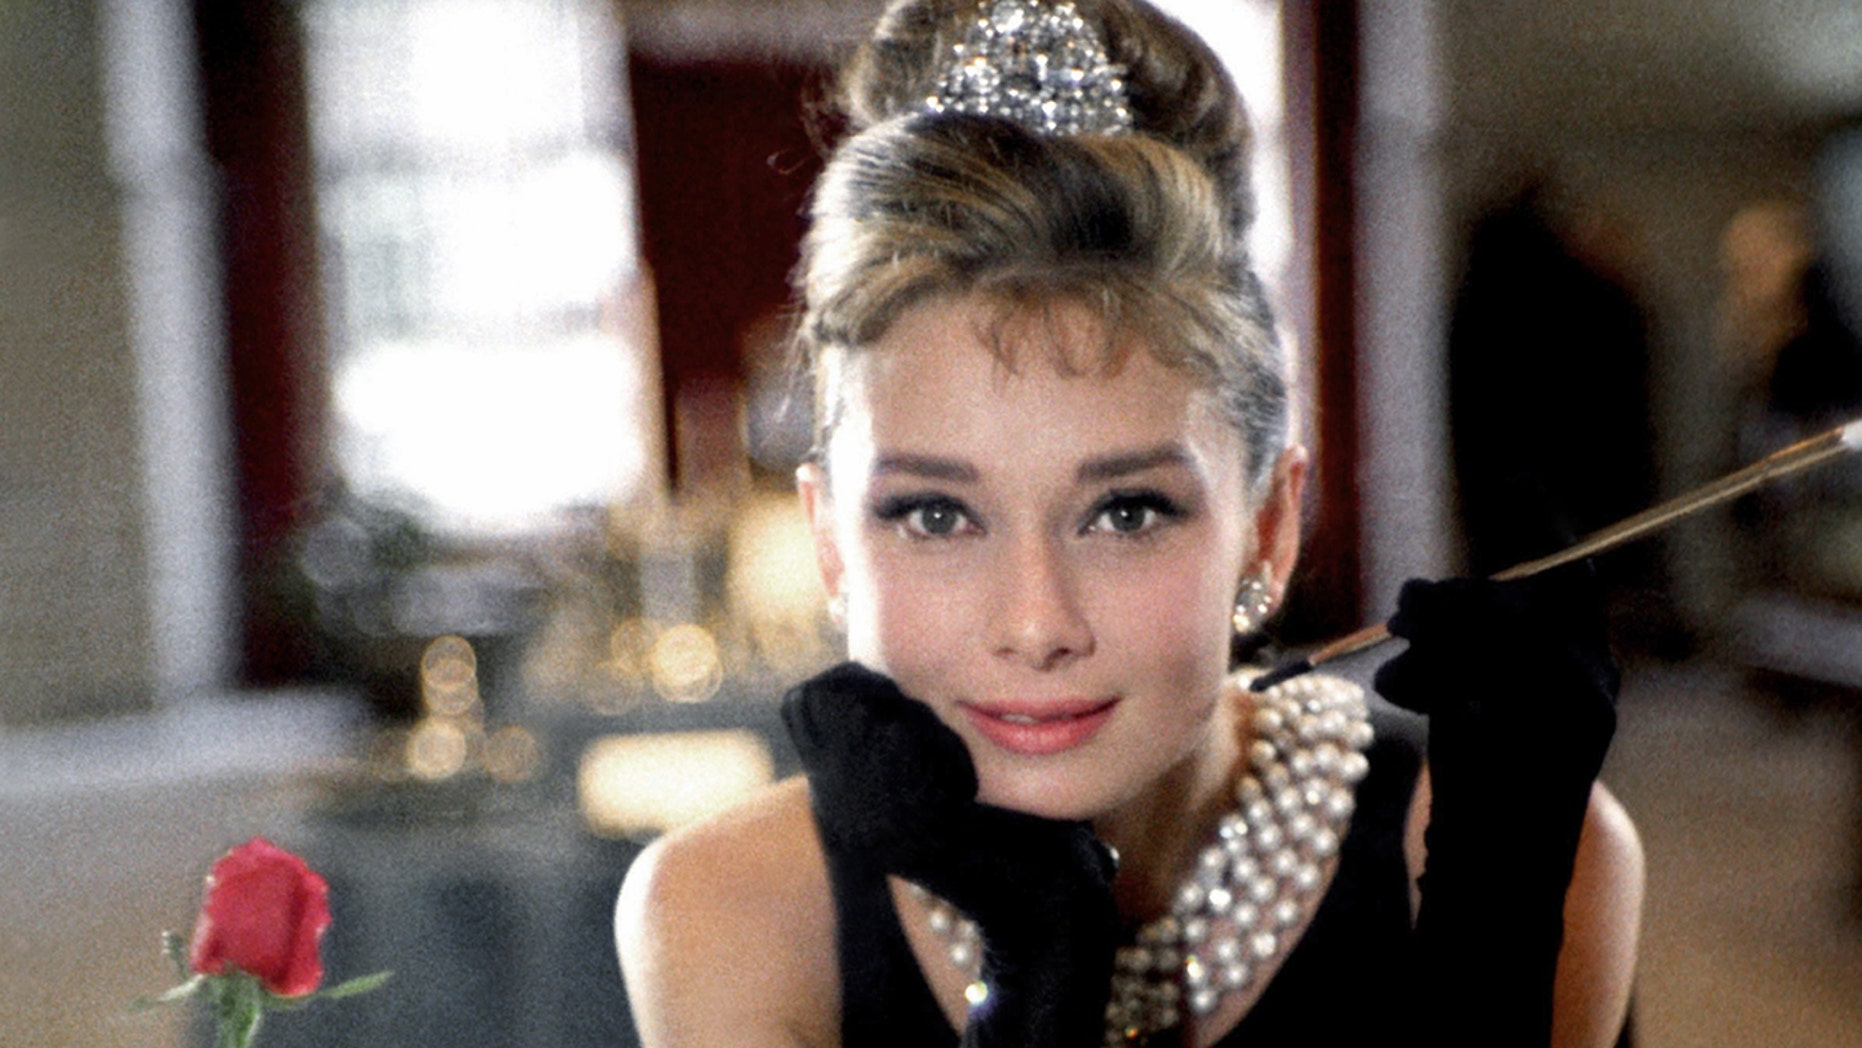 Audrey Hepburn reportedly helped resist the Nazis during World War II, according to a new book.